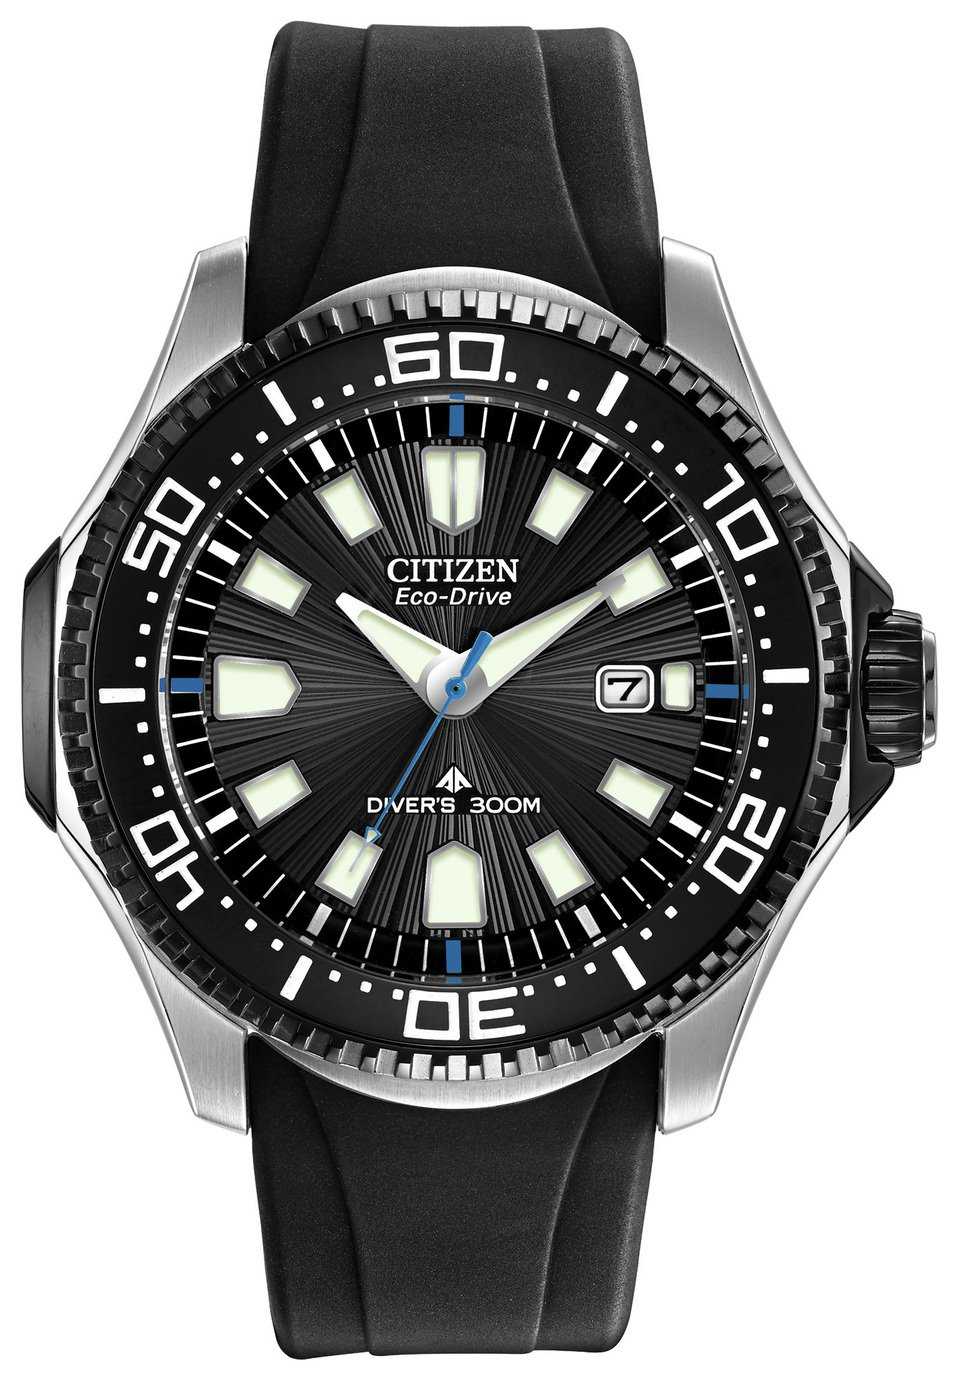 Citizen Eco-Drive Men's Black Silicone Rotating Bezel Watch